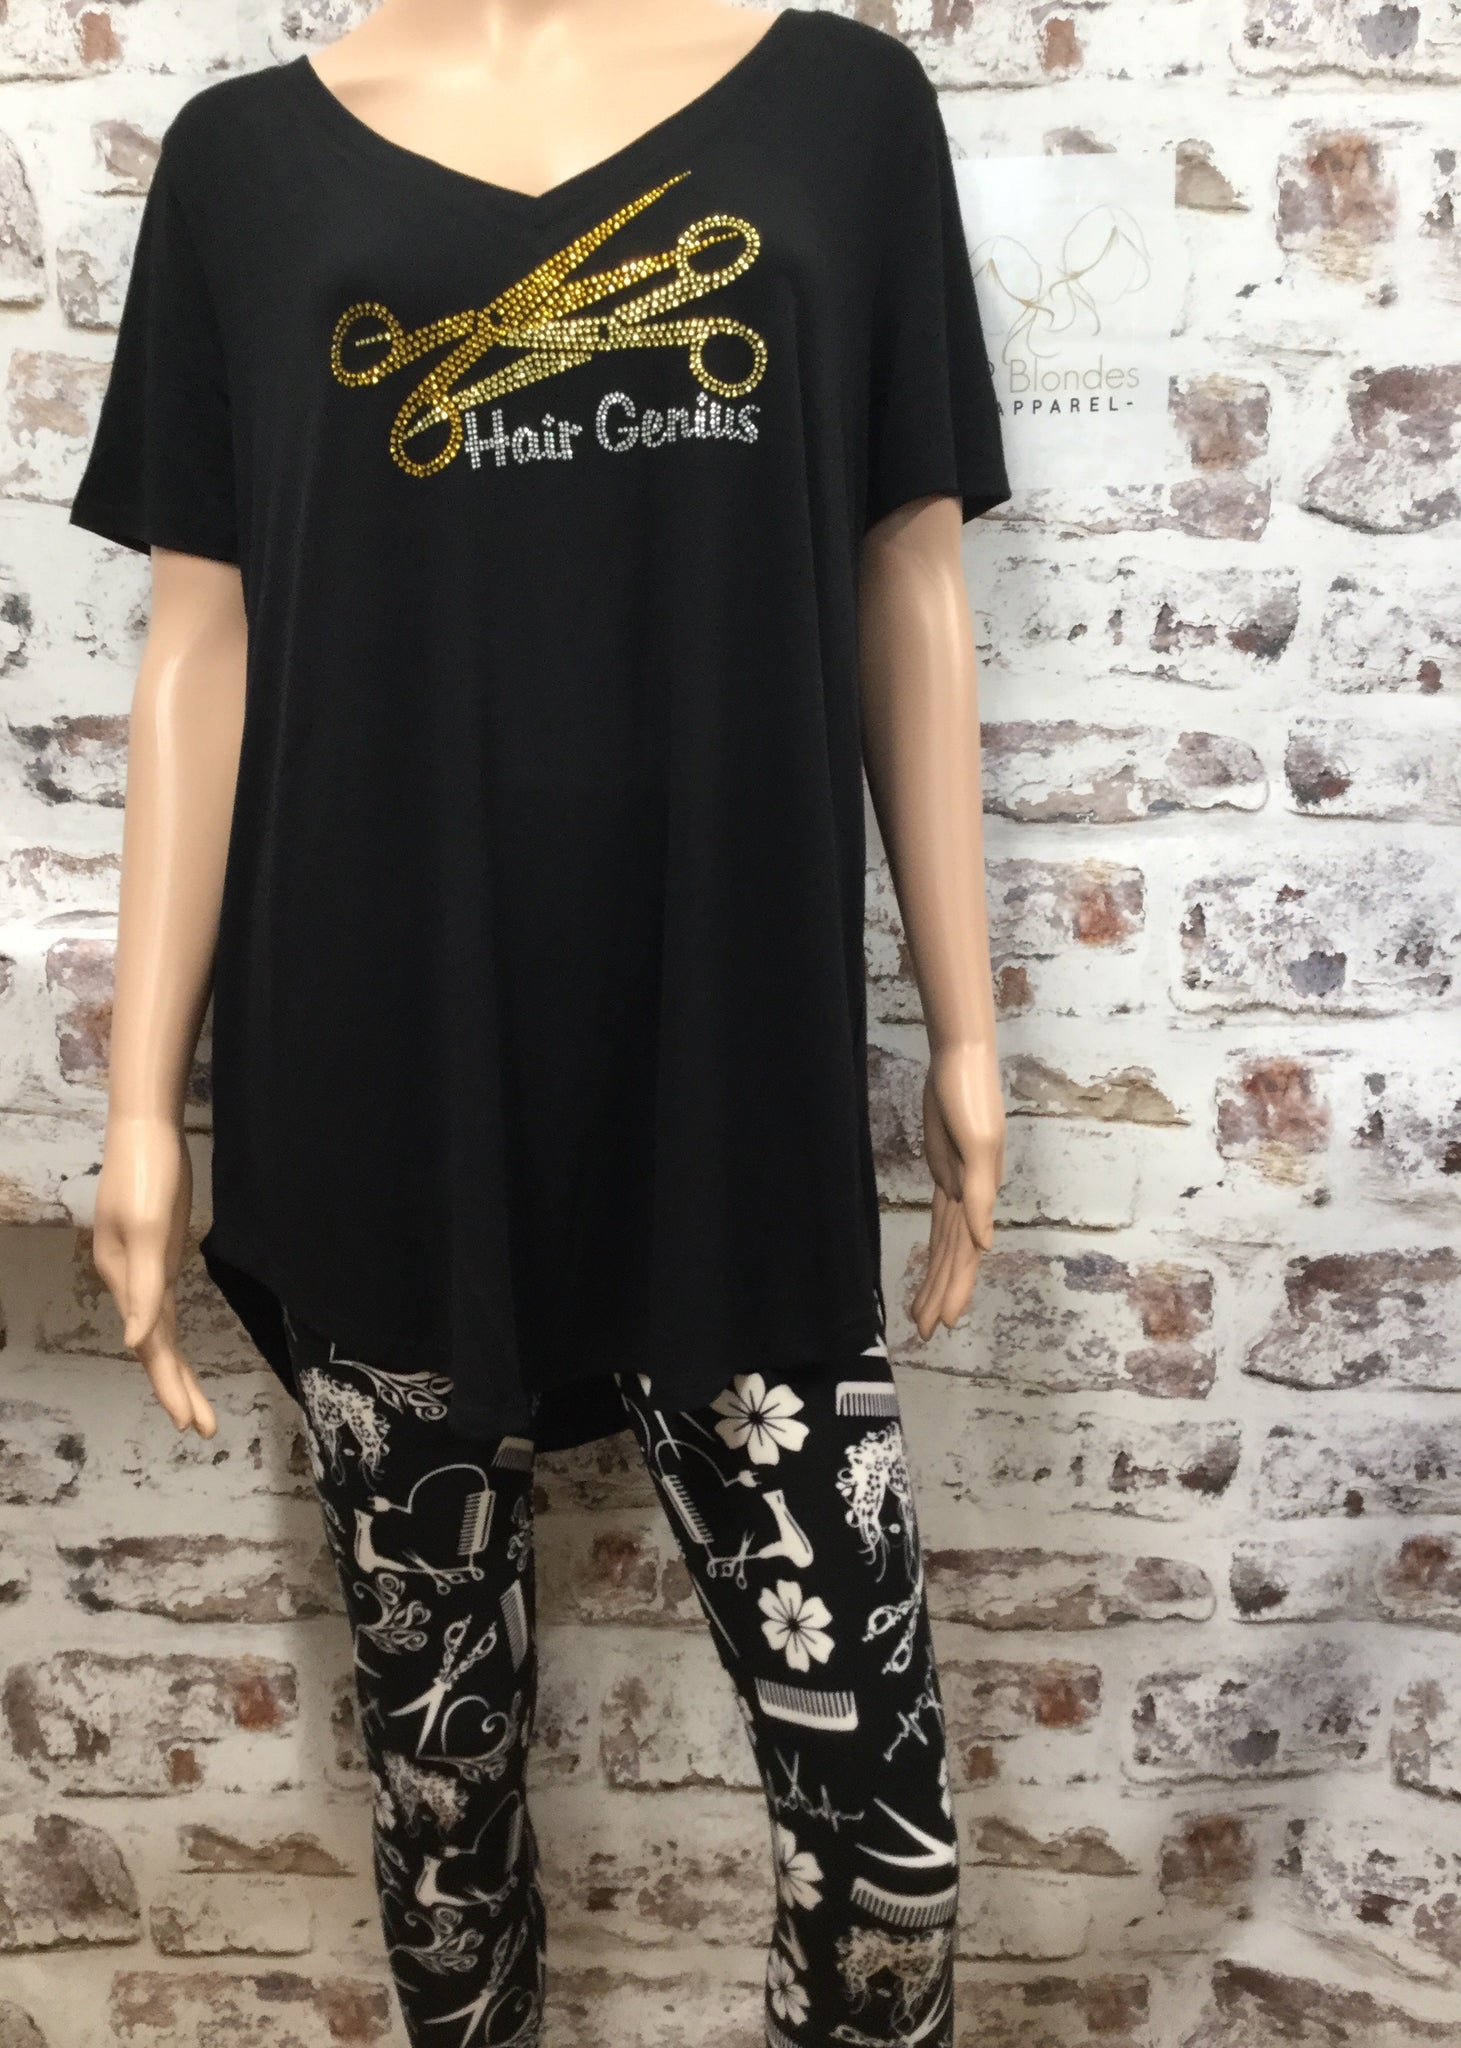 Black V-Neck with Hair Genius Scissor Rhinestone Top